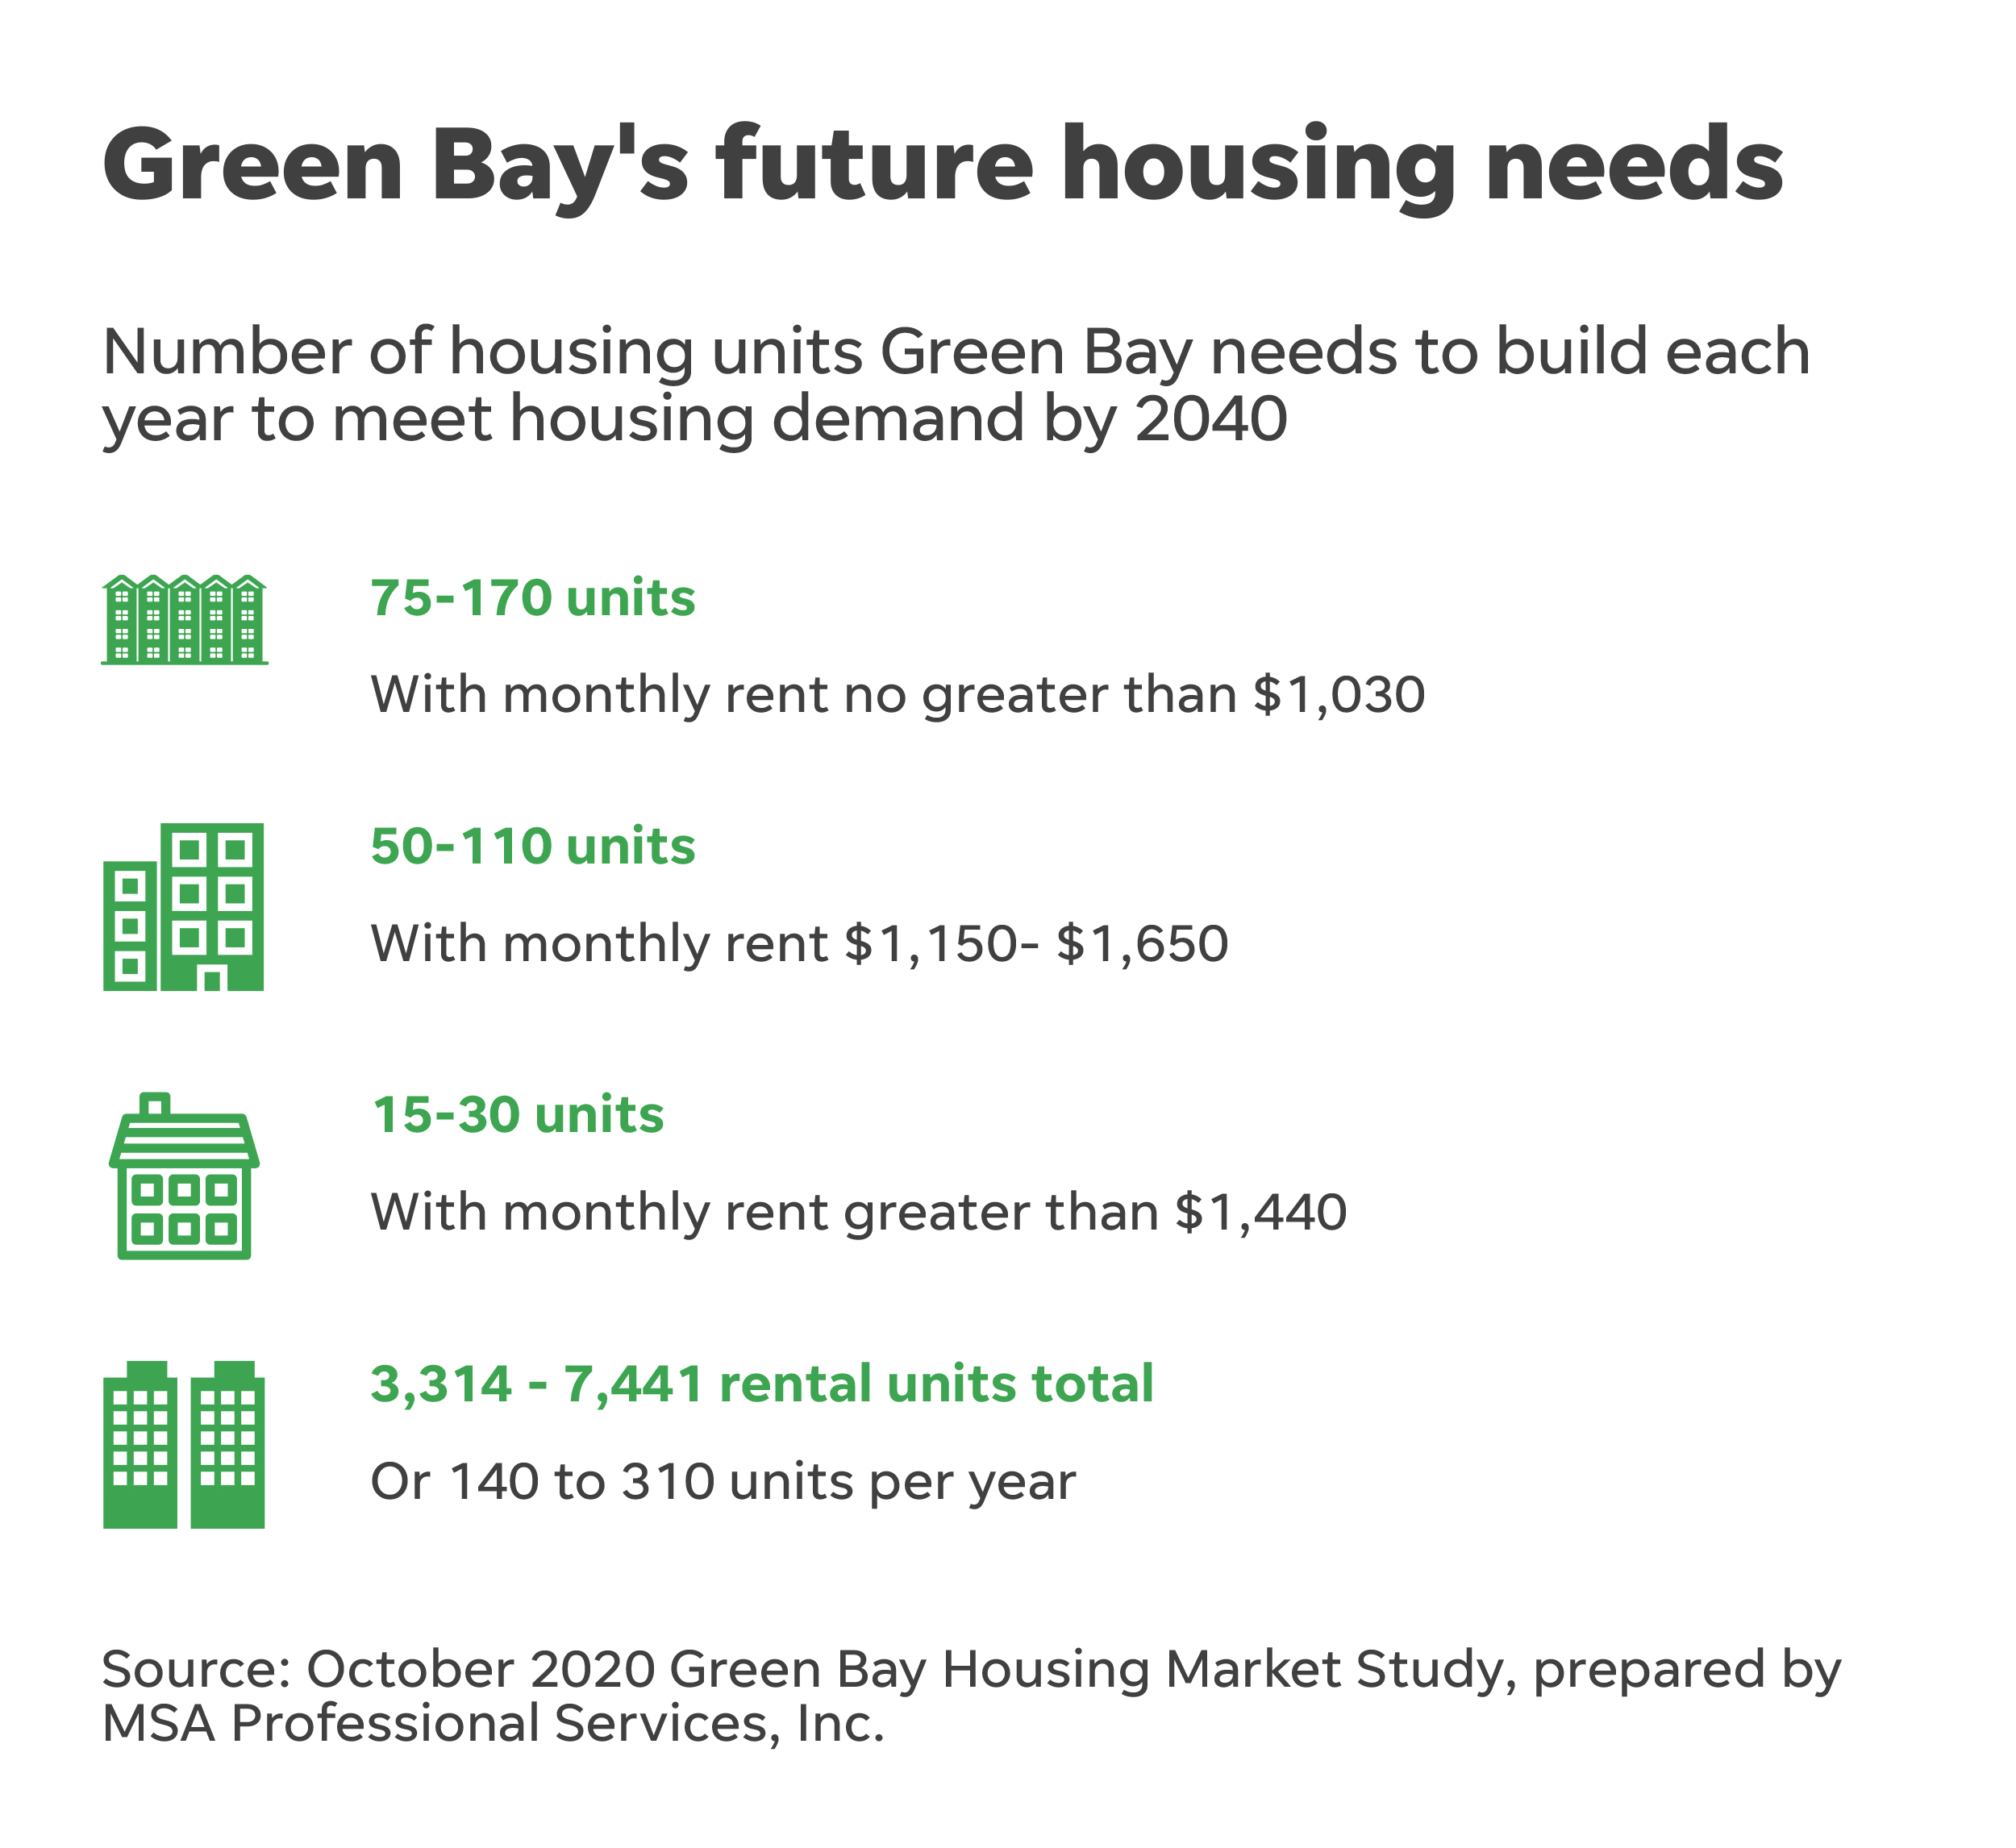 Number Of Housing Units Green Bay Needs To Meet Housing Demand By 2040